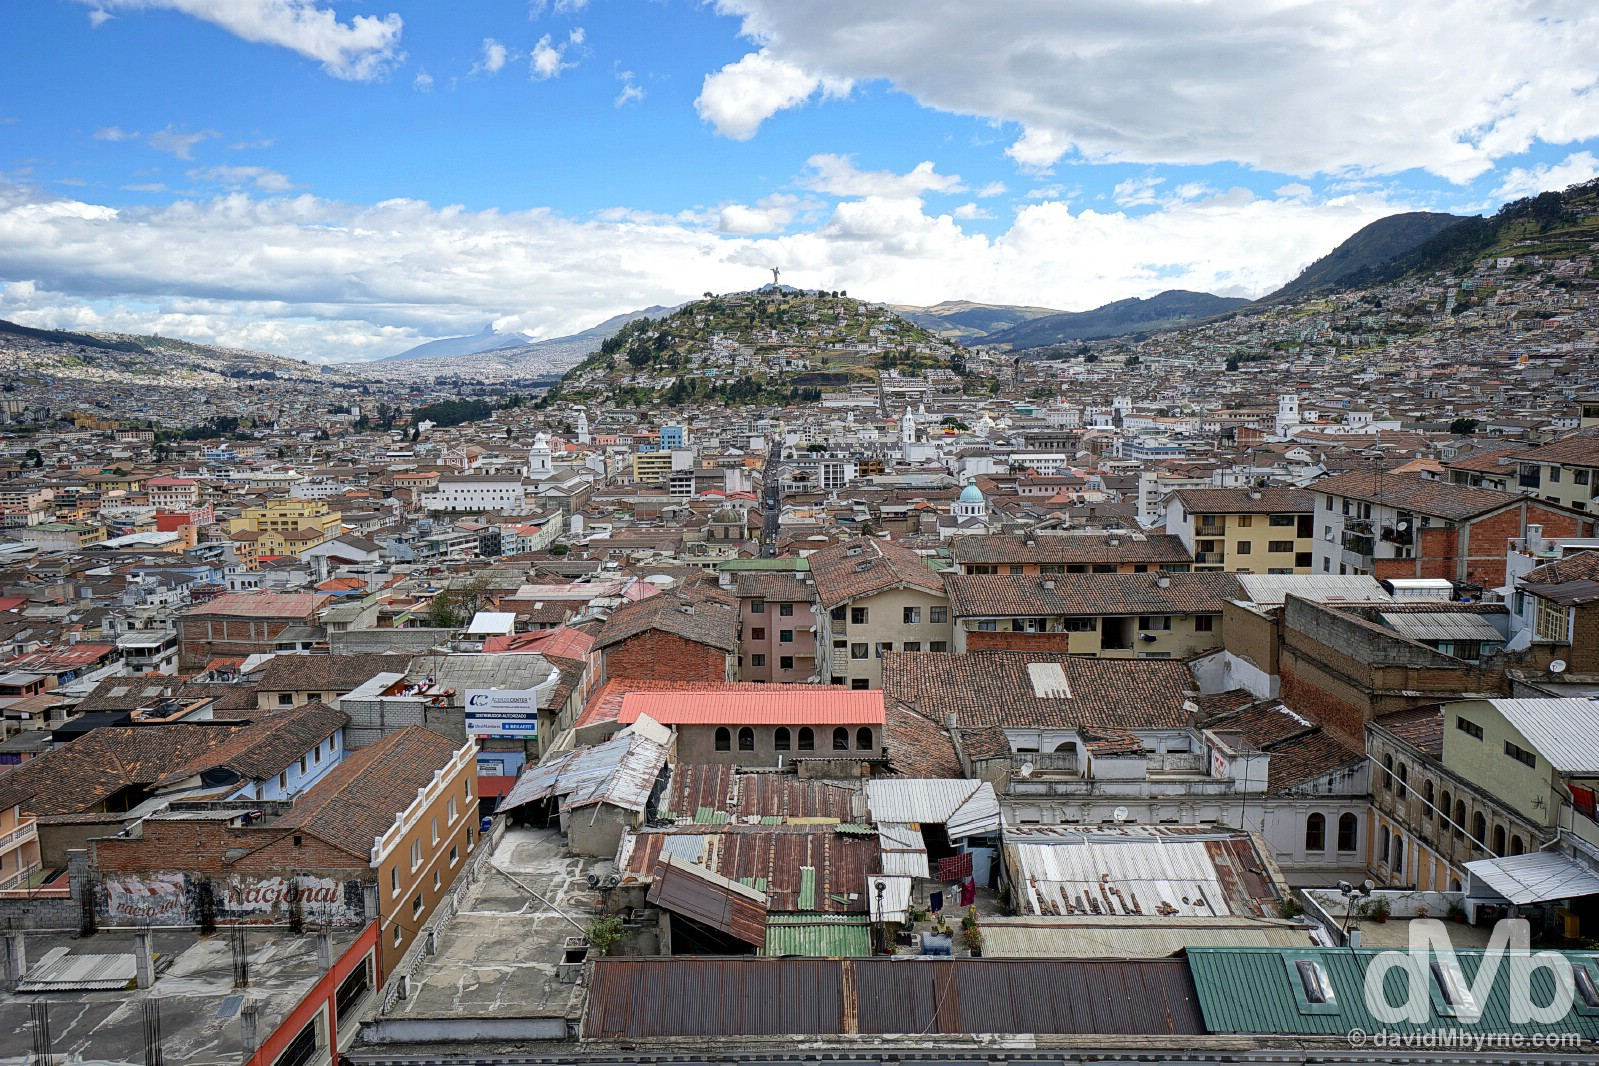 A portion of Quito, Ecuador, as seen from the bell tower of the Gothic Basilica del Voto Nacional. July 4, 2015.